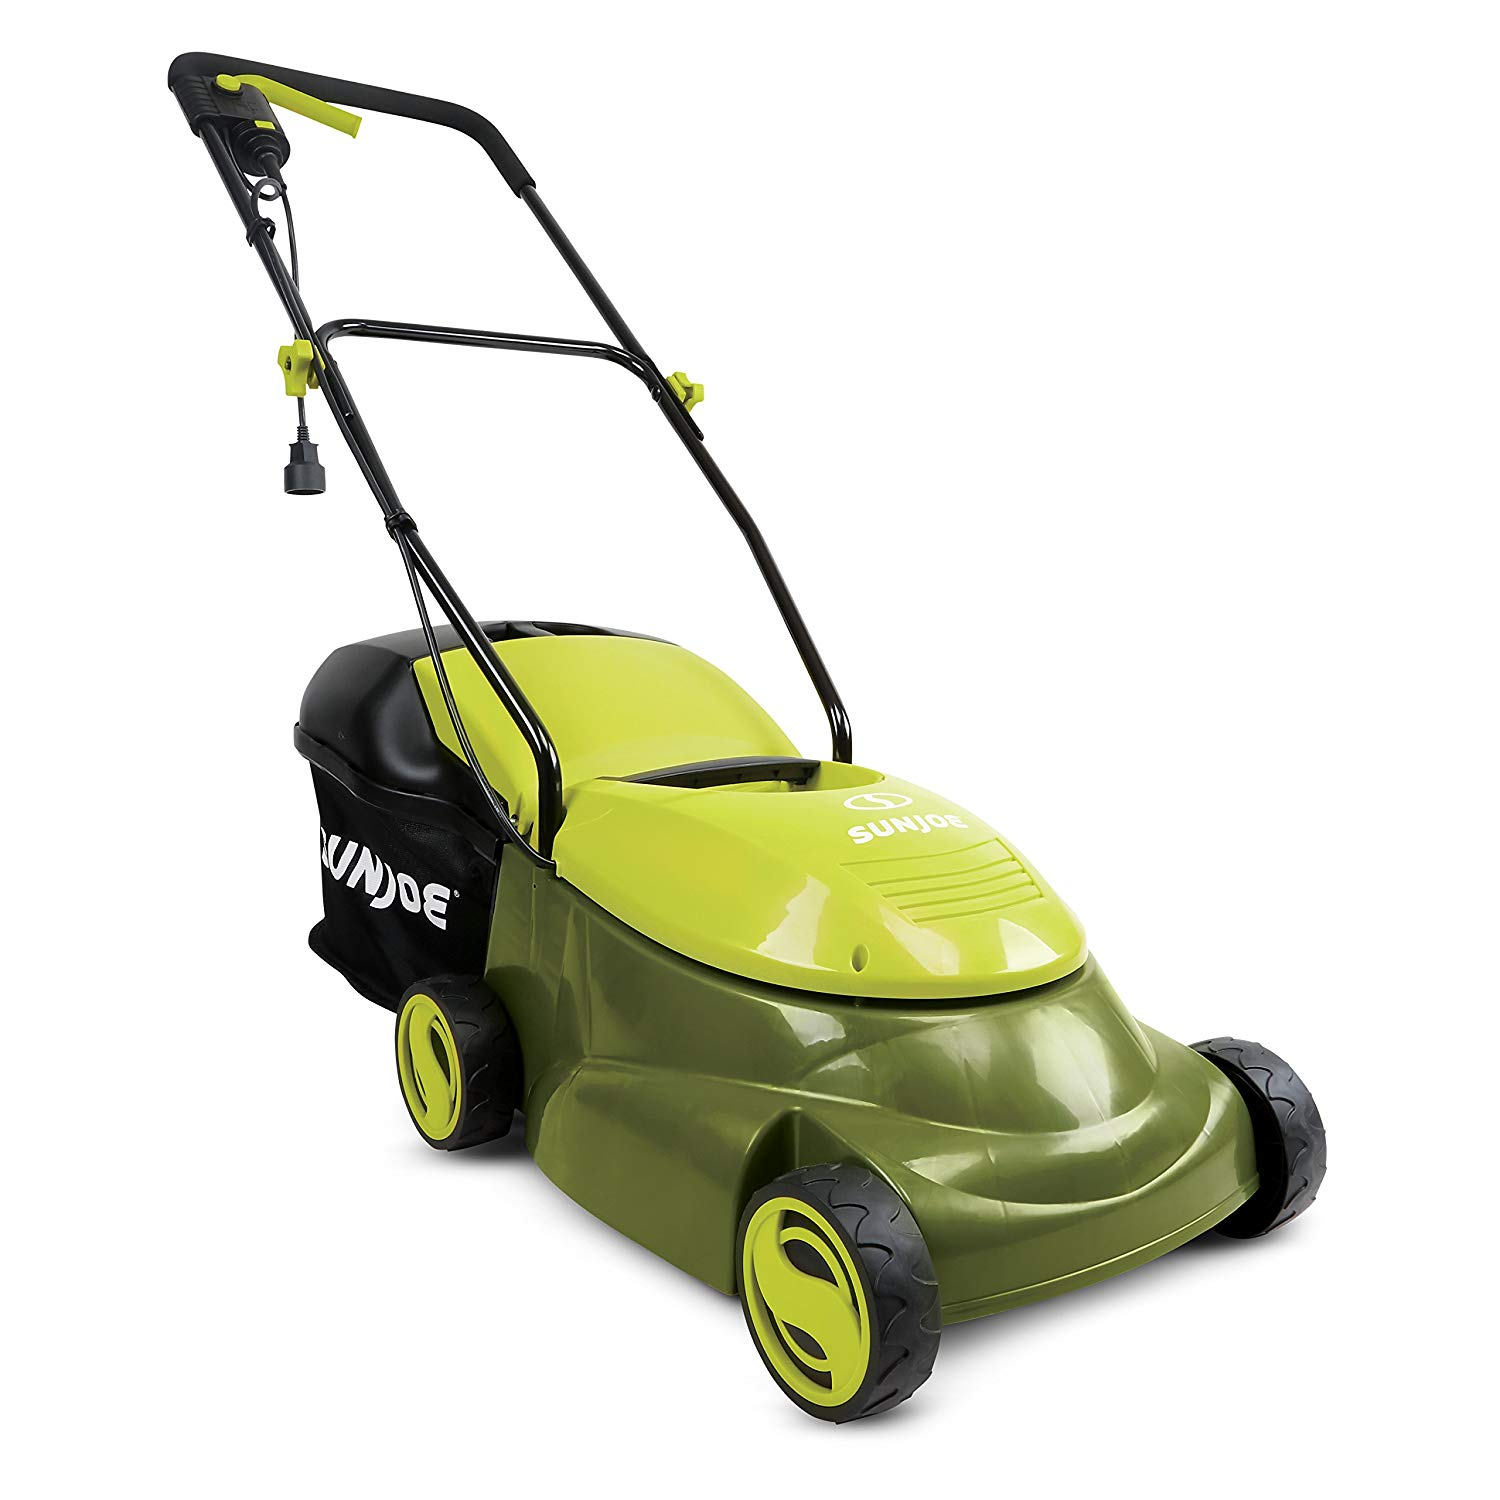 sun joe lawn mower review